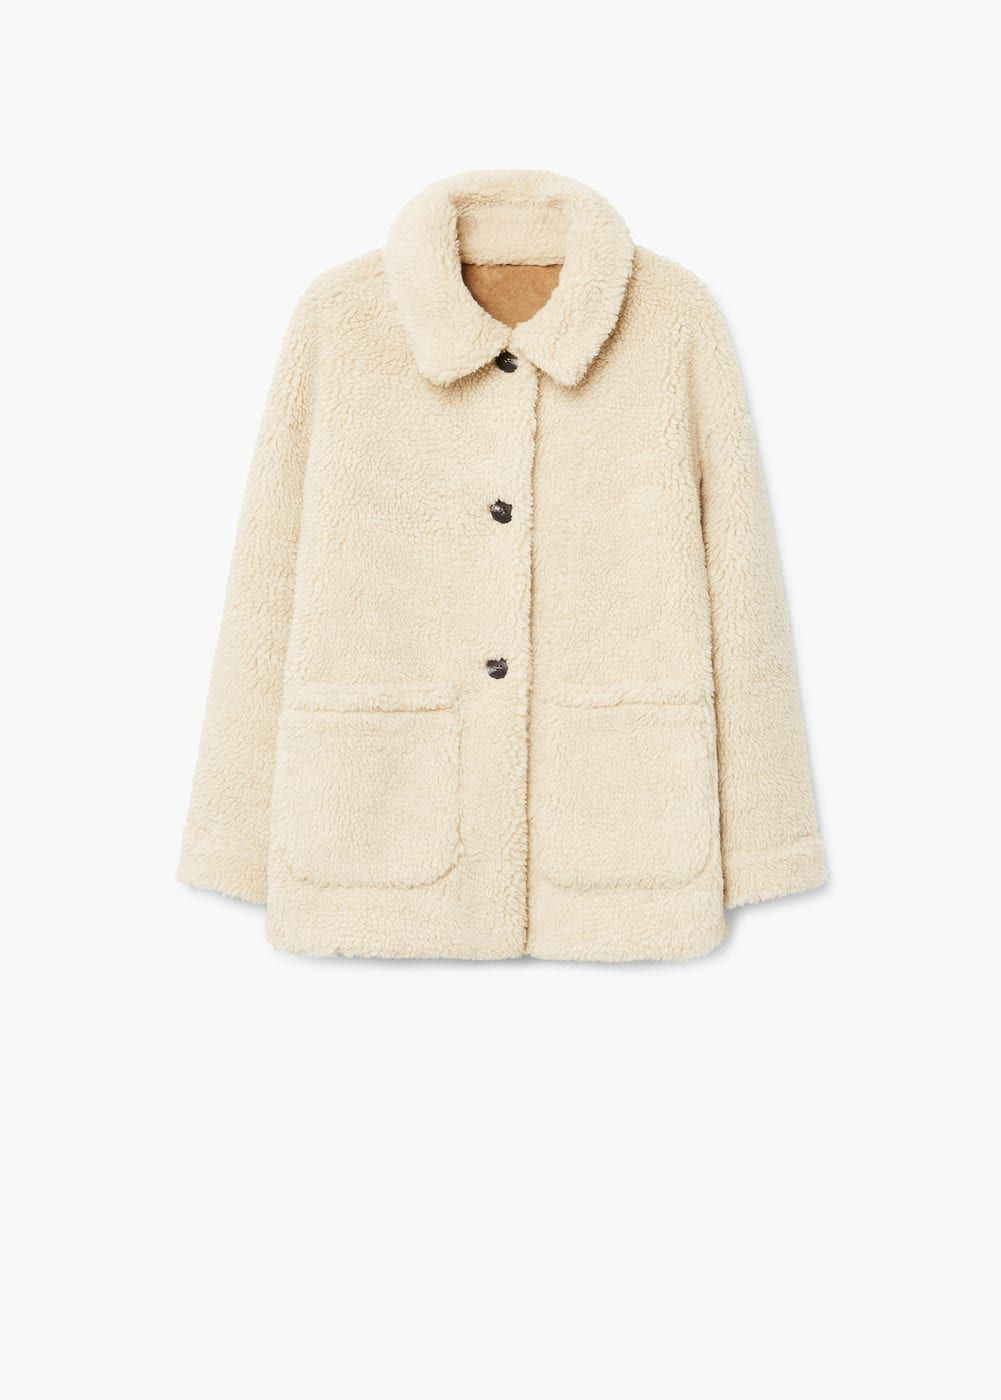 f705caa095 Faux shearling-lined coat - Women